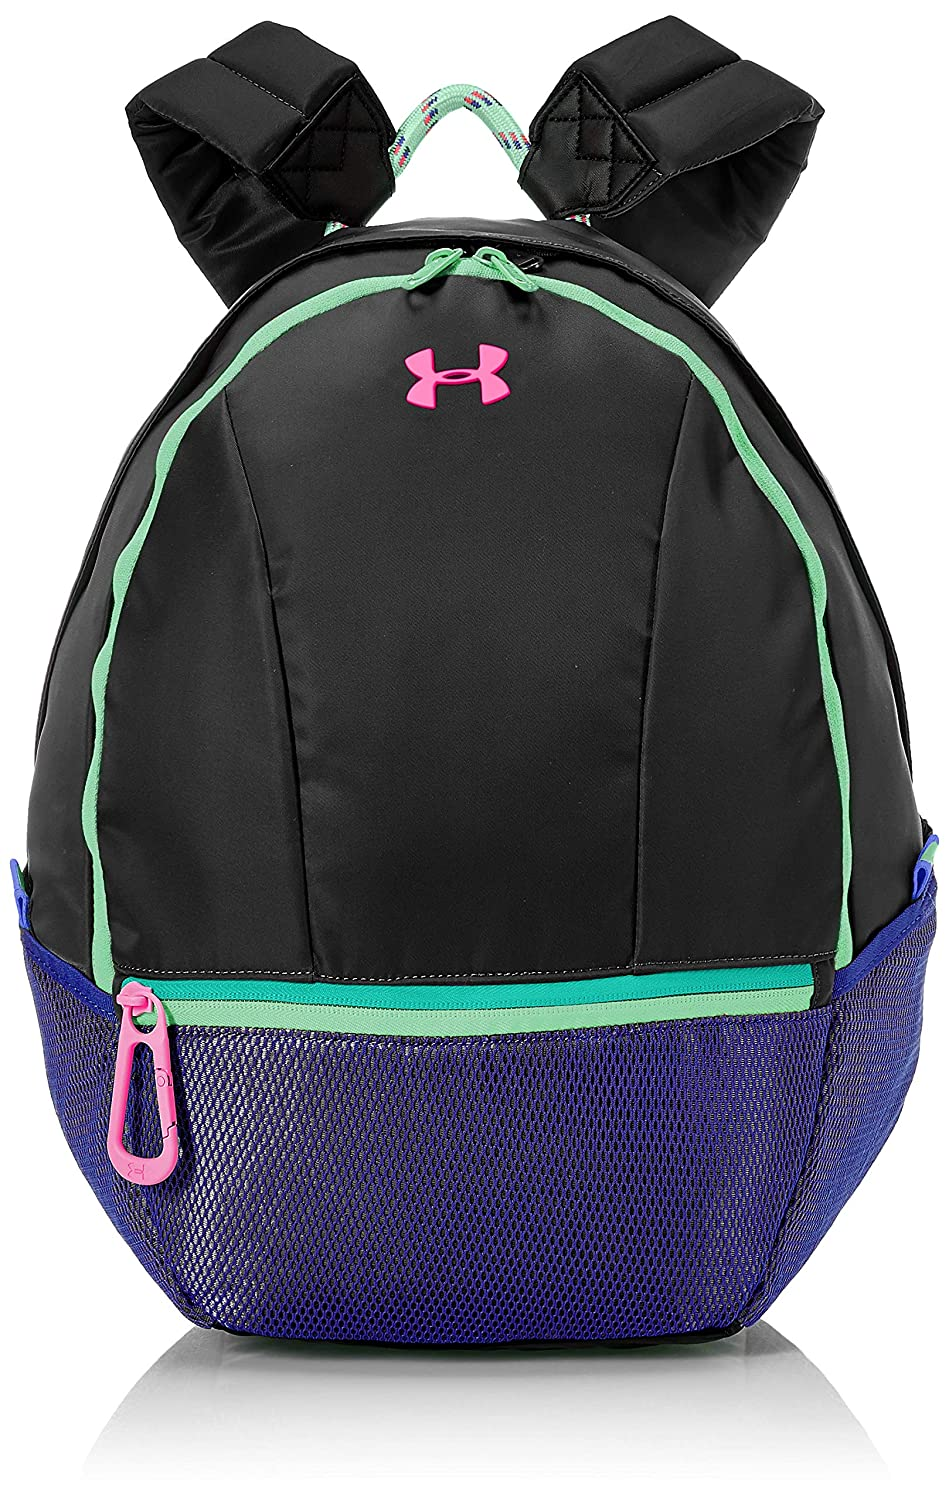 40c97b2902fc Amazon.com  Under Armour Girls Downtown Backpack  Sports   Outdoors